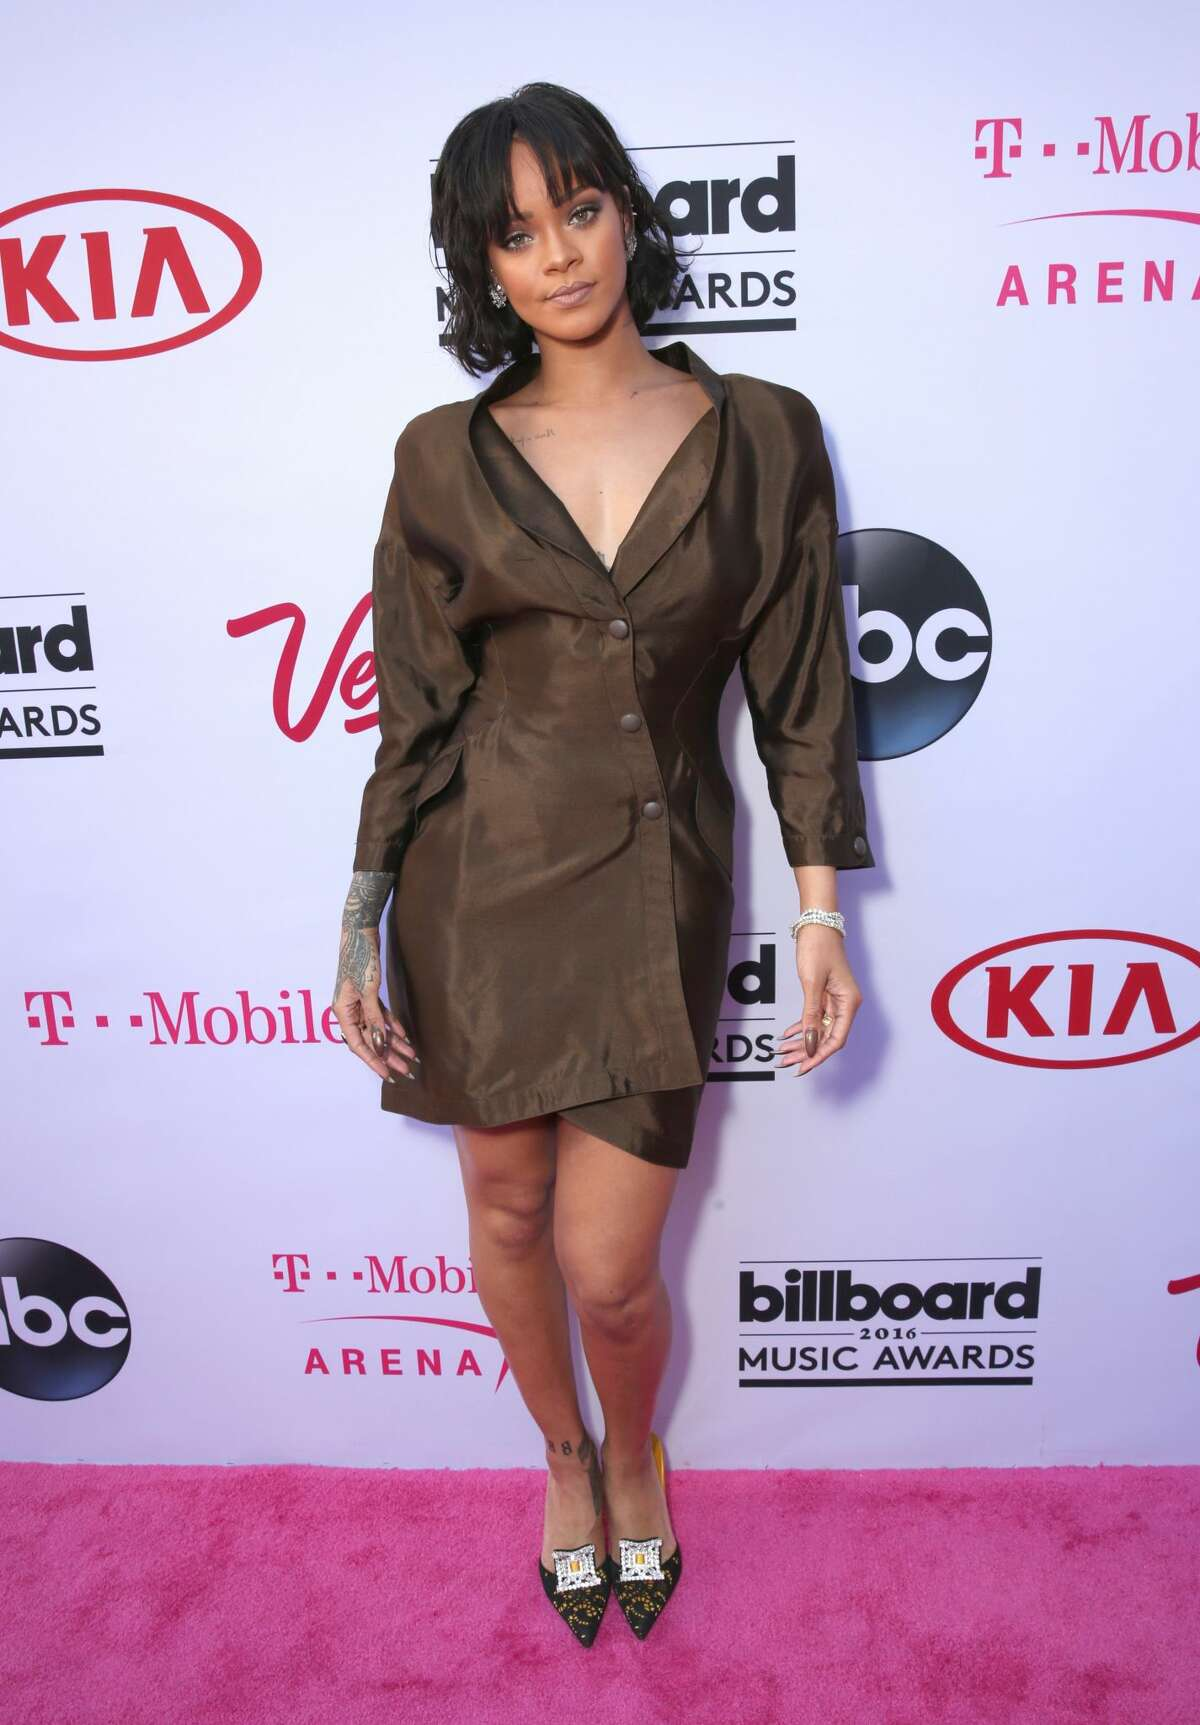 Worst: Rihanna Someone who markets umbrellas should have no need for a business-casual rain dress.